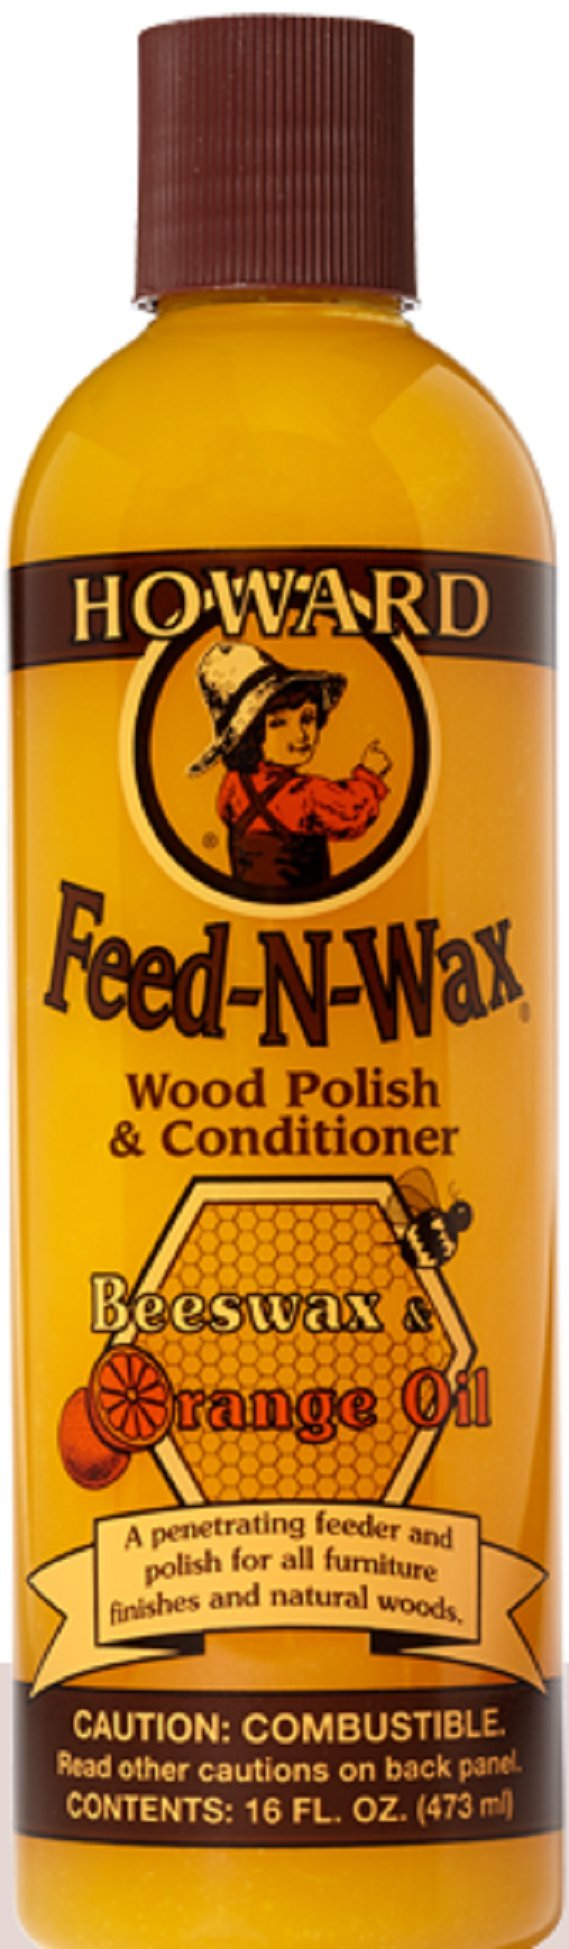 Howard FW0016 Feed-N-Wax Wood Polish and Conditioner, Beeswax & Orange Oil, 16-Ounce